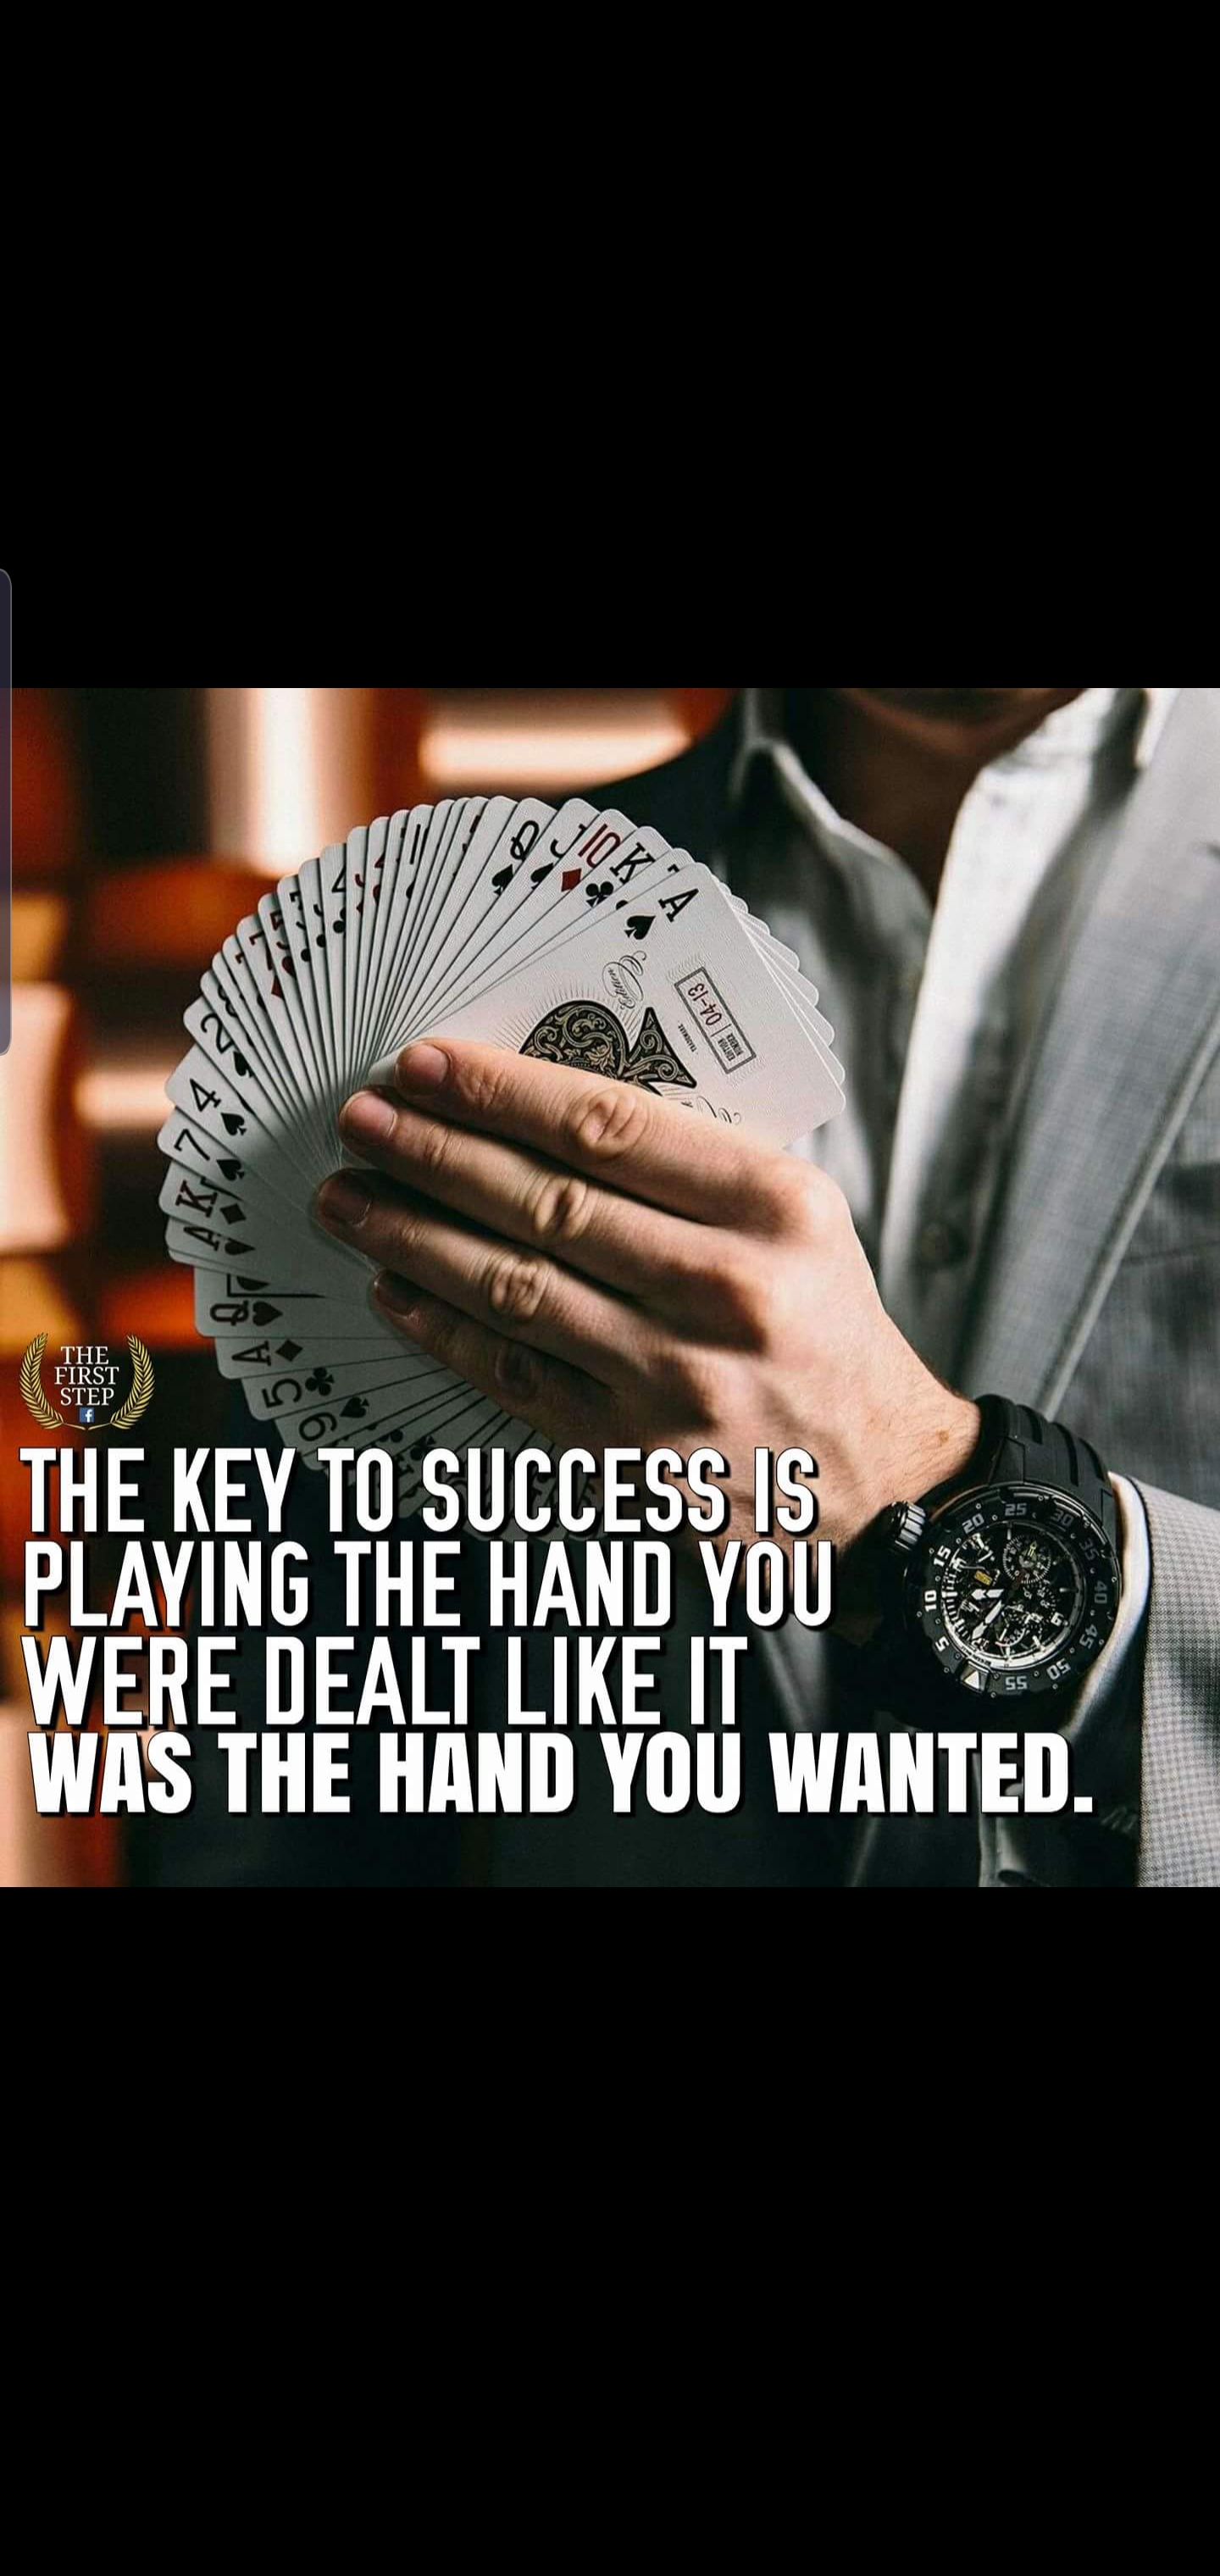 [Image] Play the hand you were dealt with.